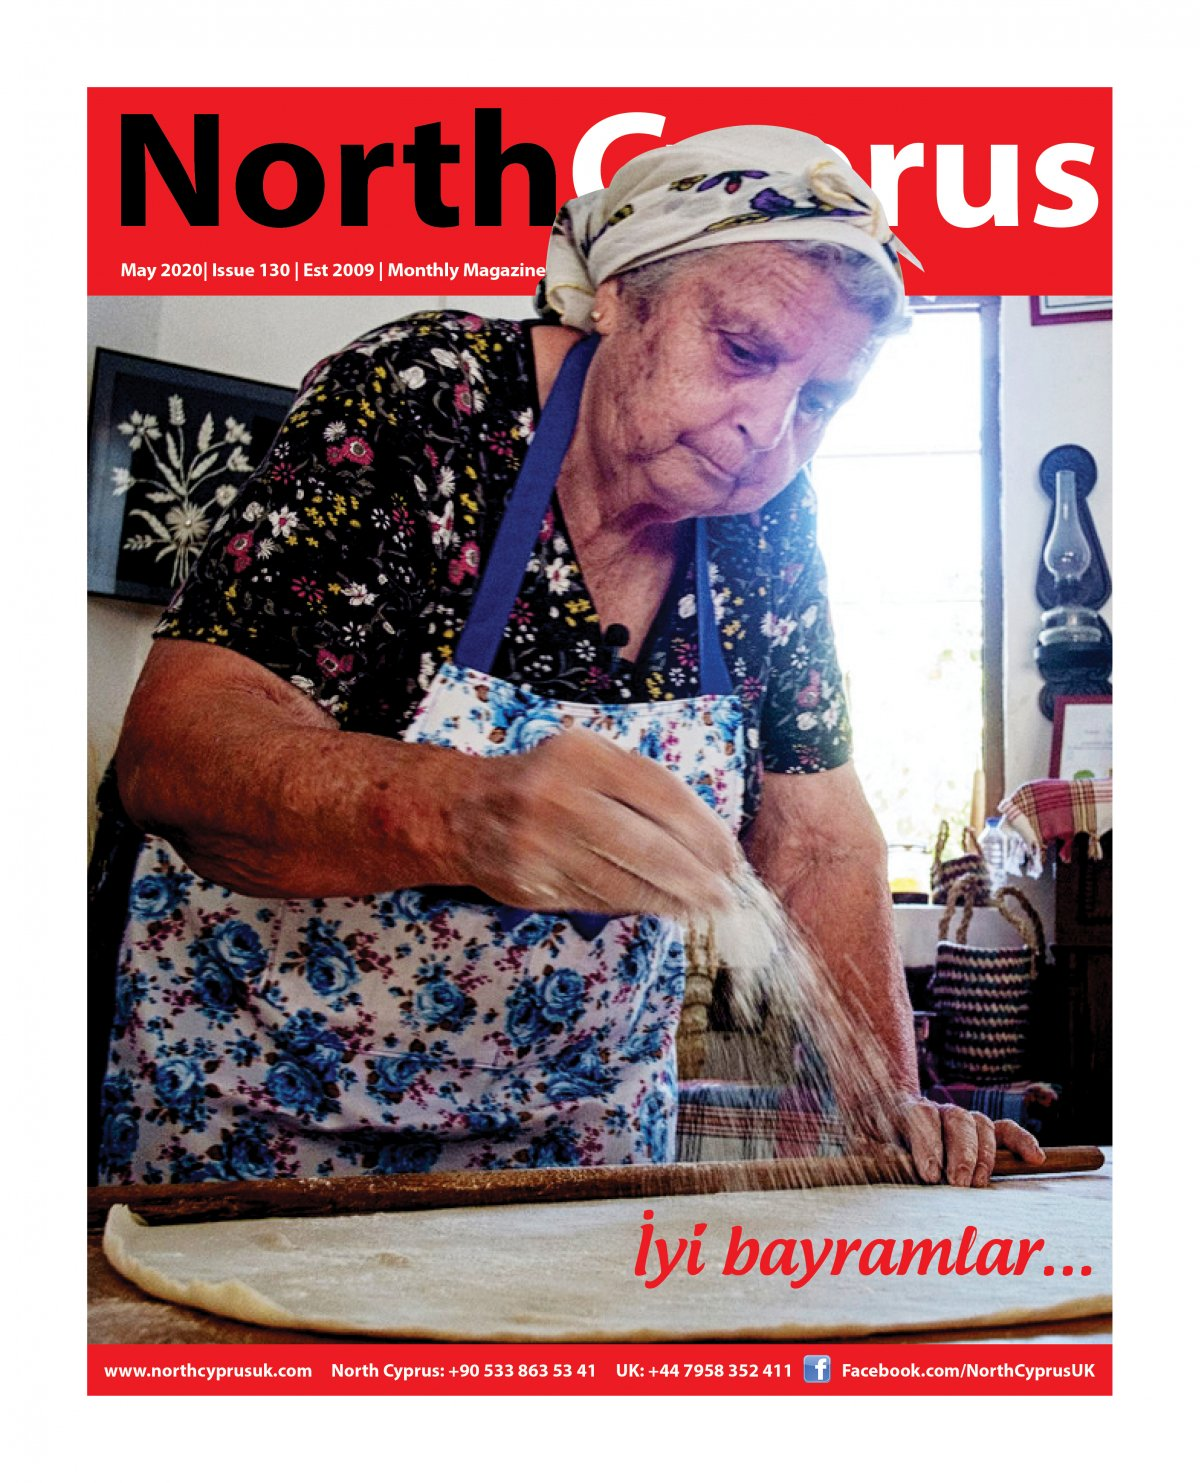 North Cyprus UK - 12.05.2020 Manşeti